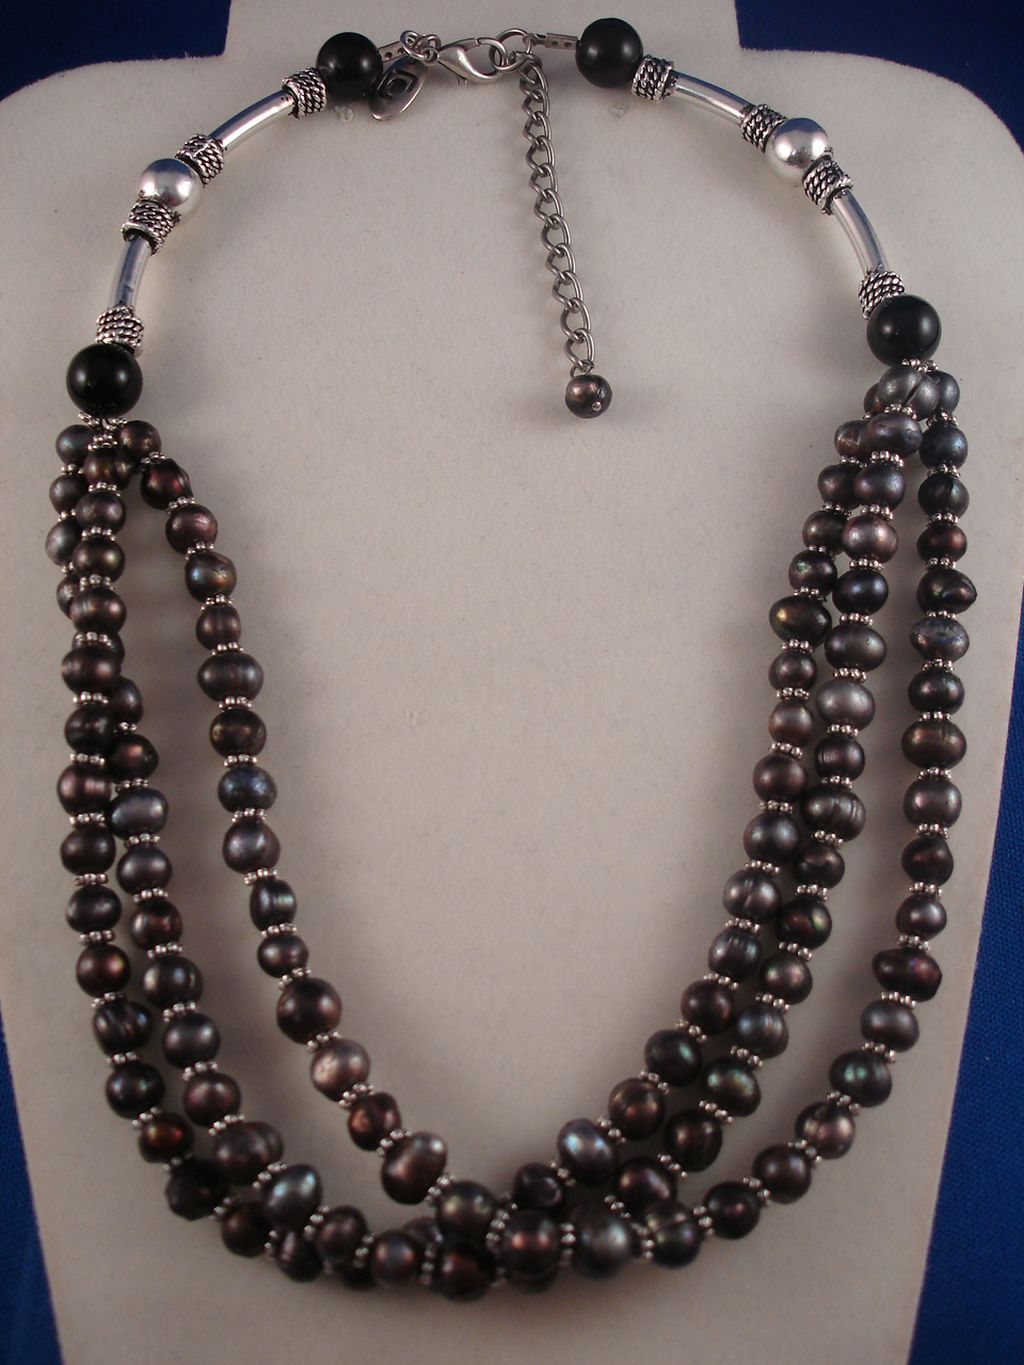 Three Layers Smoked Black Genuine Pearls Necklace, Classic Style